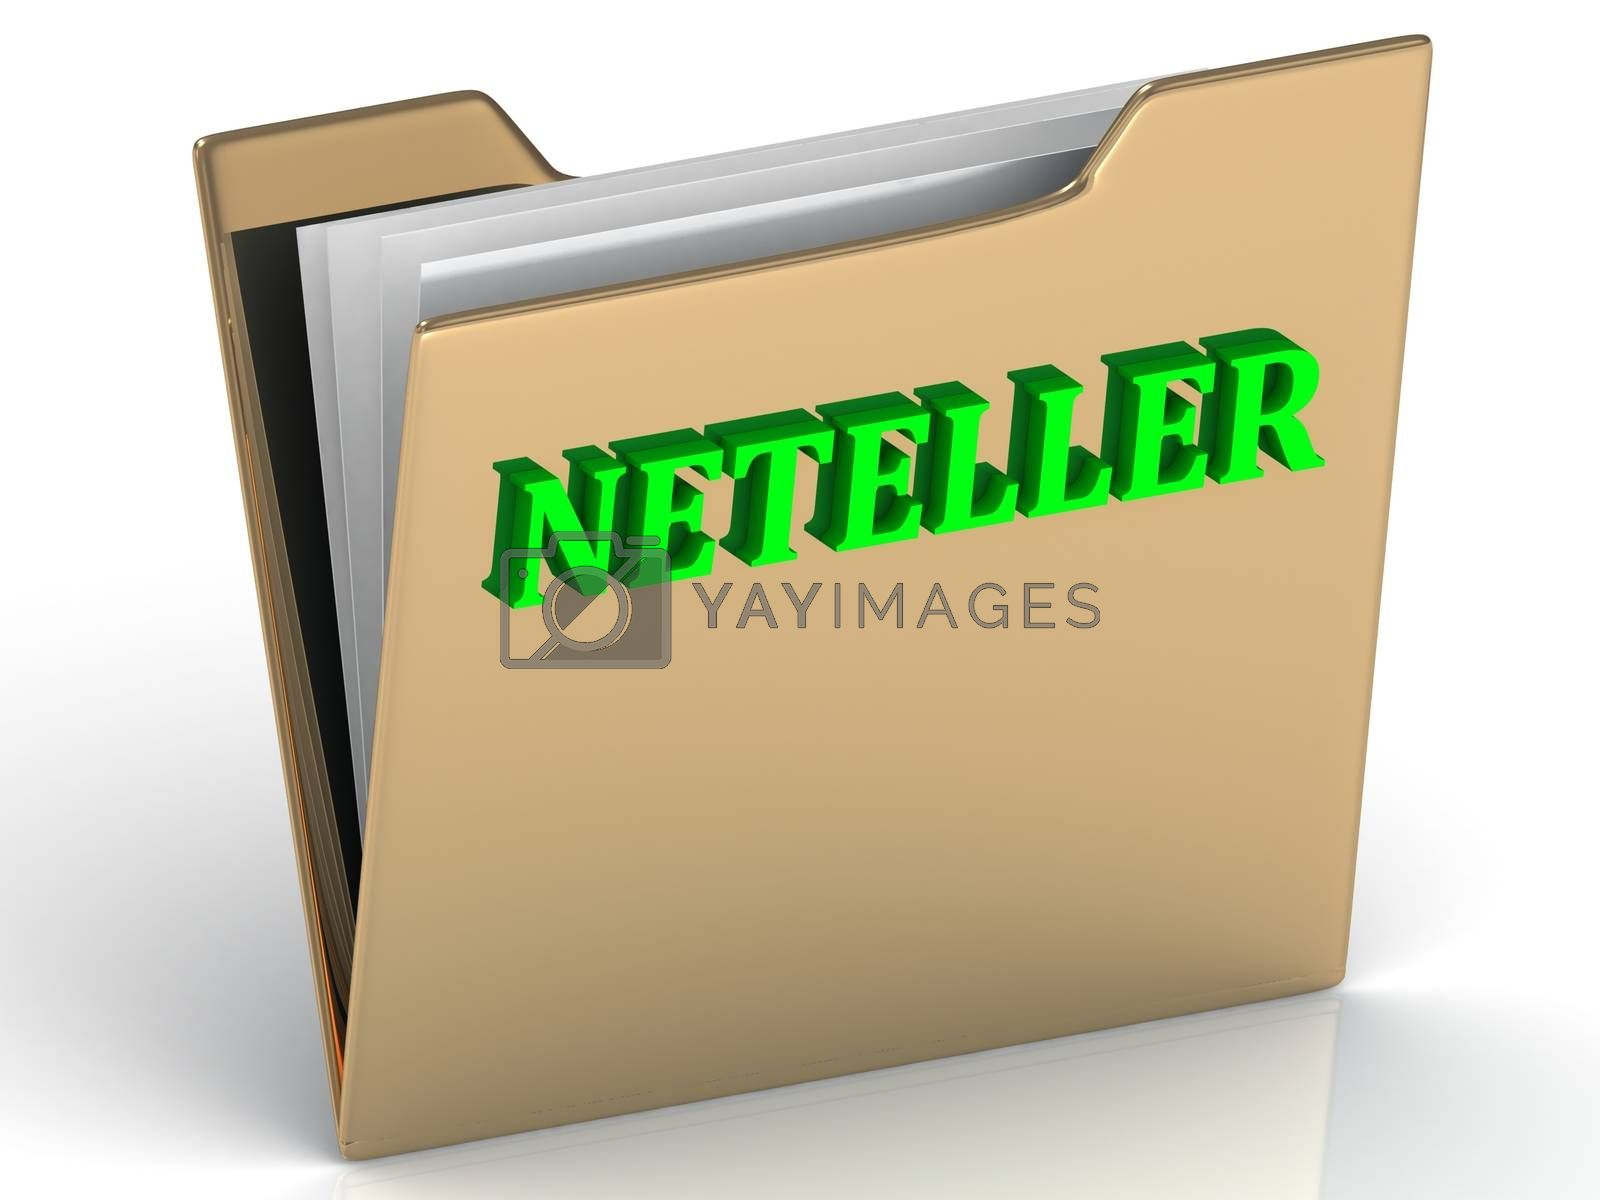 NETELLER - bright letters on a gold folder on a white background